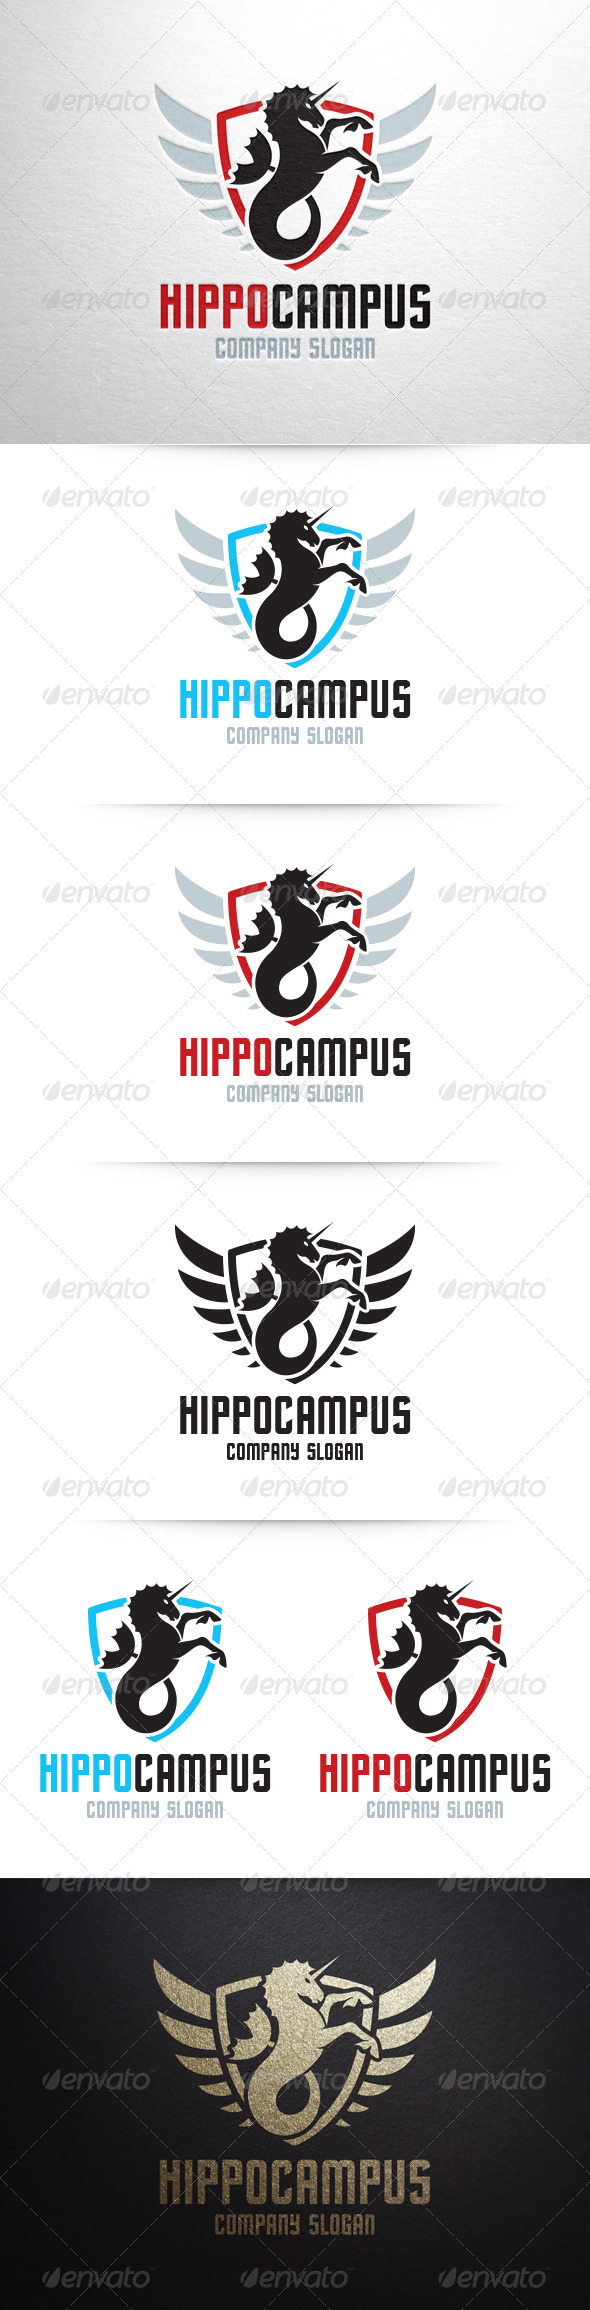 Hippocampus Logo Template - Crests Logo Templates